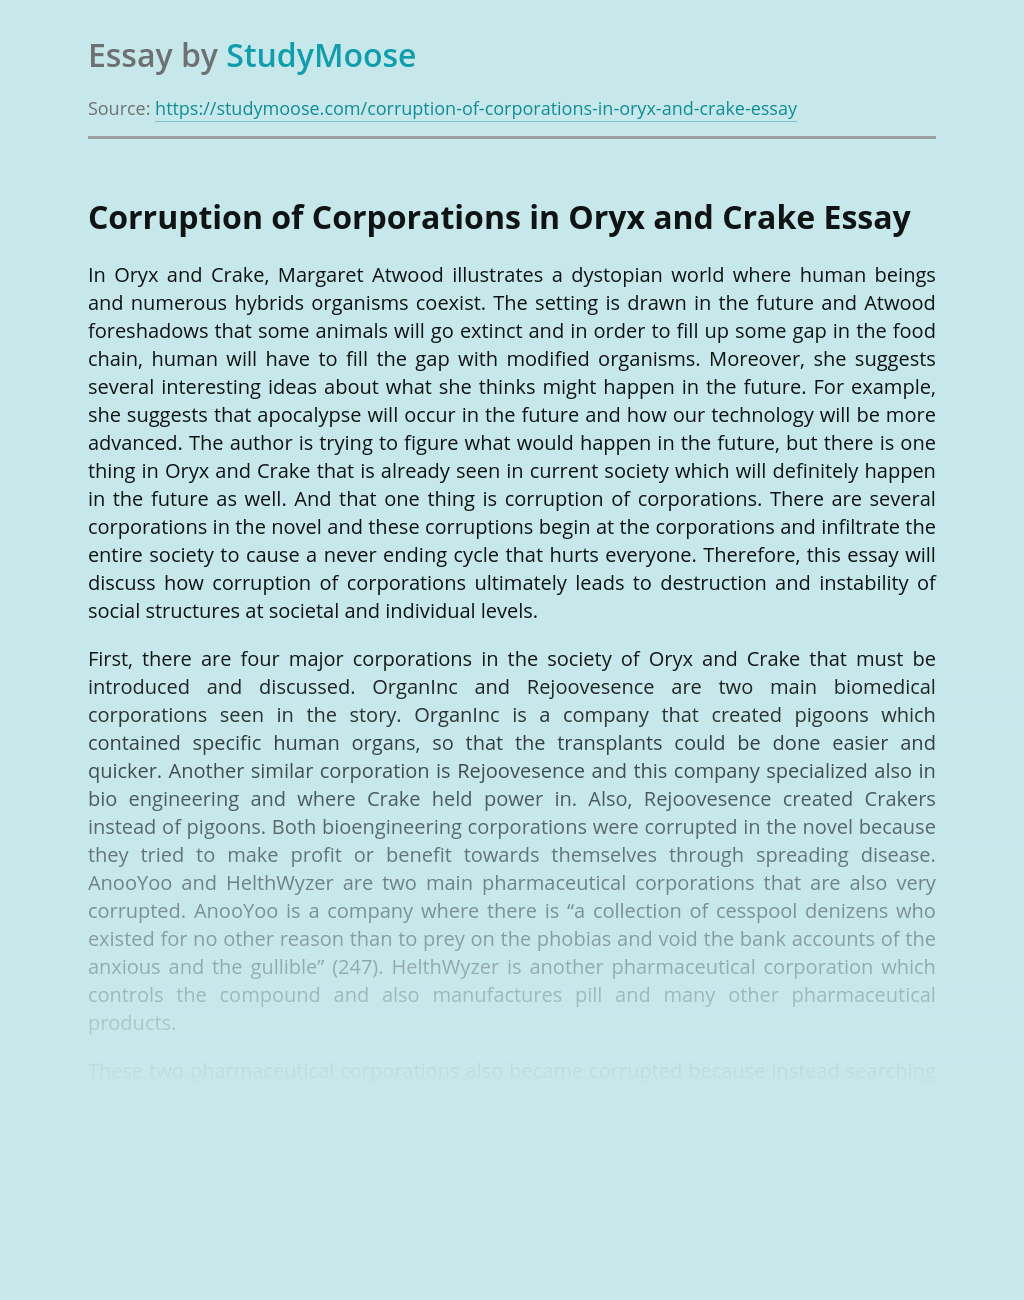 Corruption of Corporations in Oryx and Crake